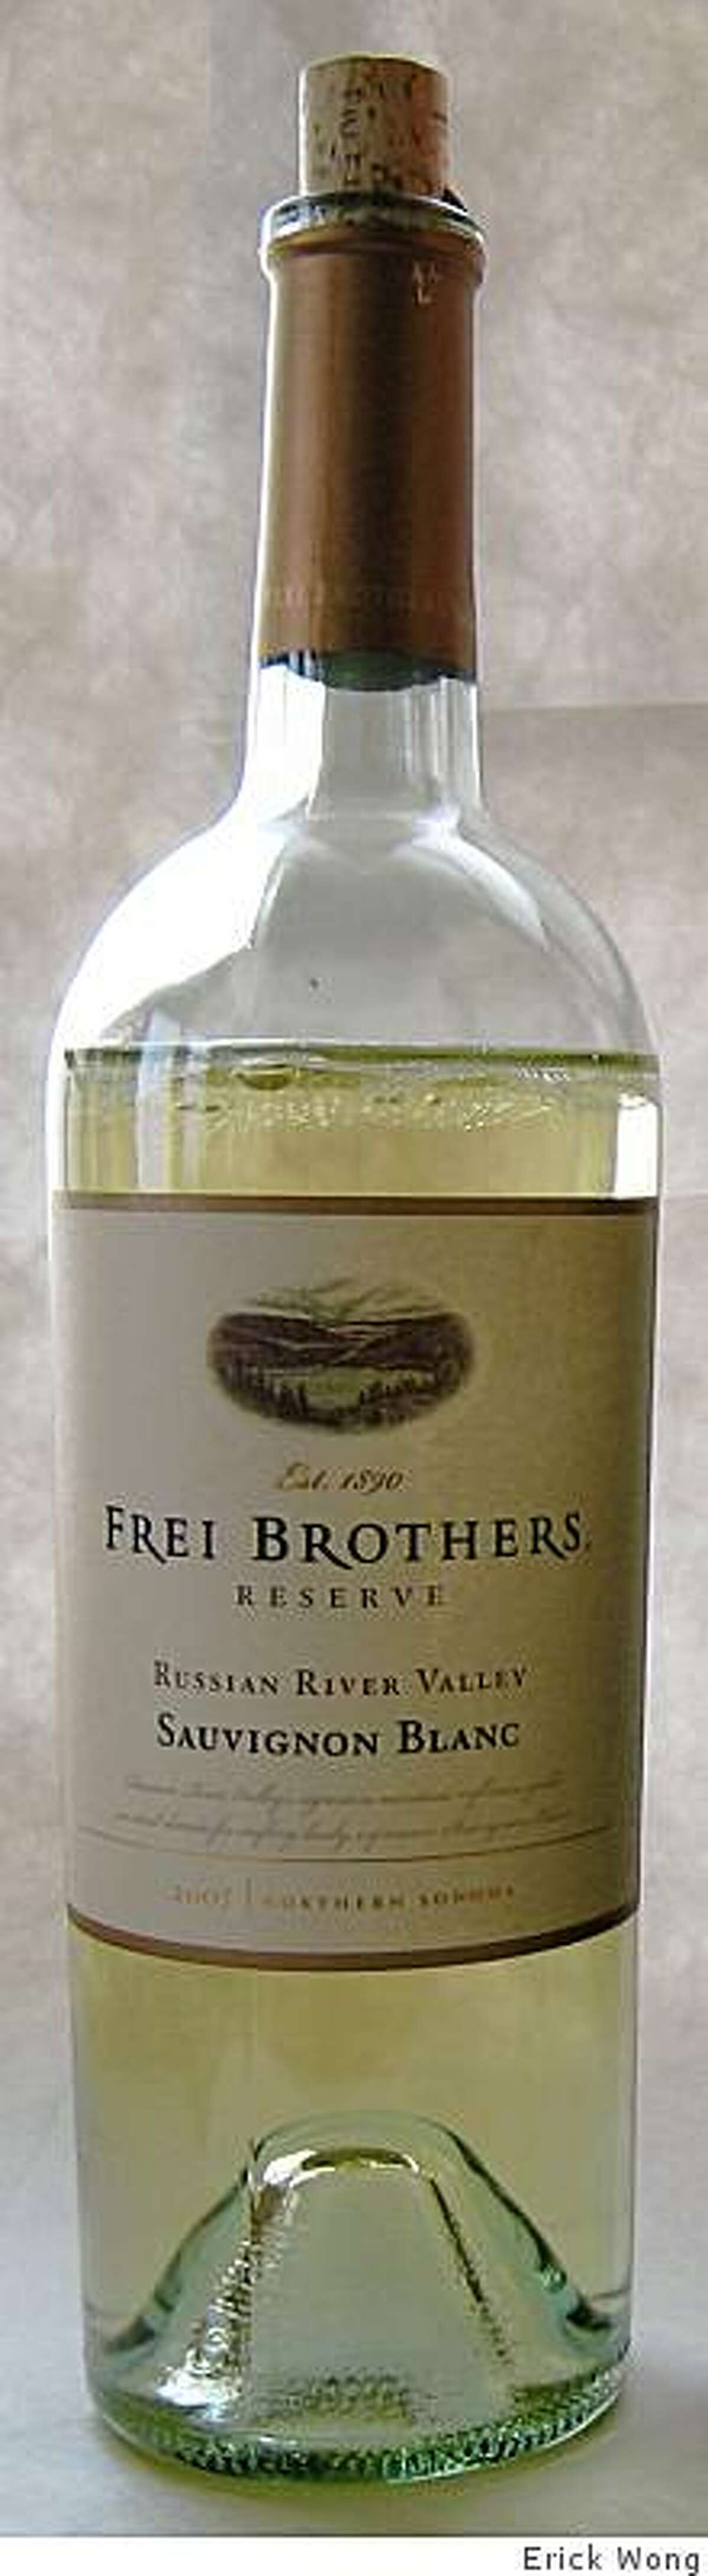 2007 Frei Brothers Reserve Russian River Valley Sauvignon Blanc